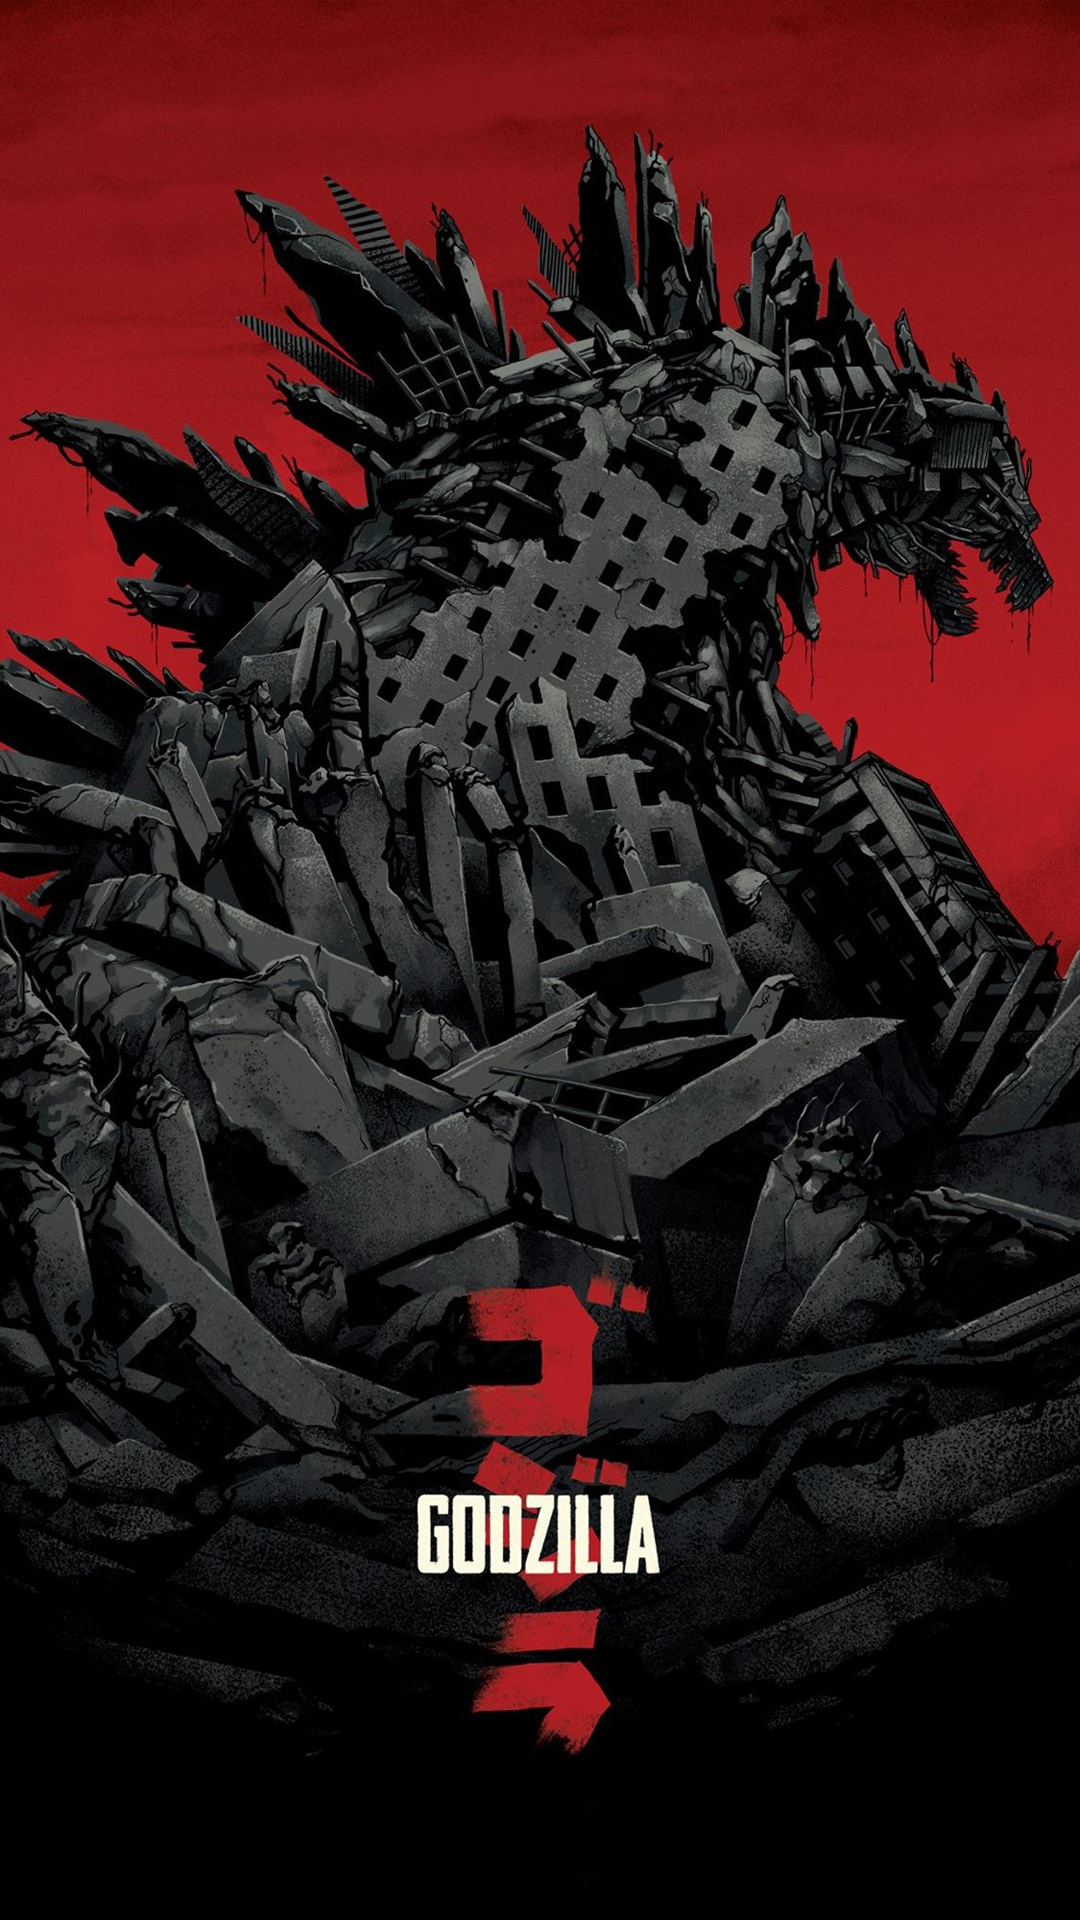 Godzilla 2014 htc one wallpaper   Best htc one wallpapers 1080x1920